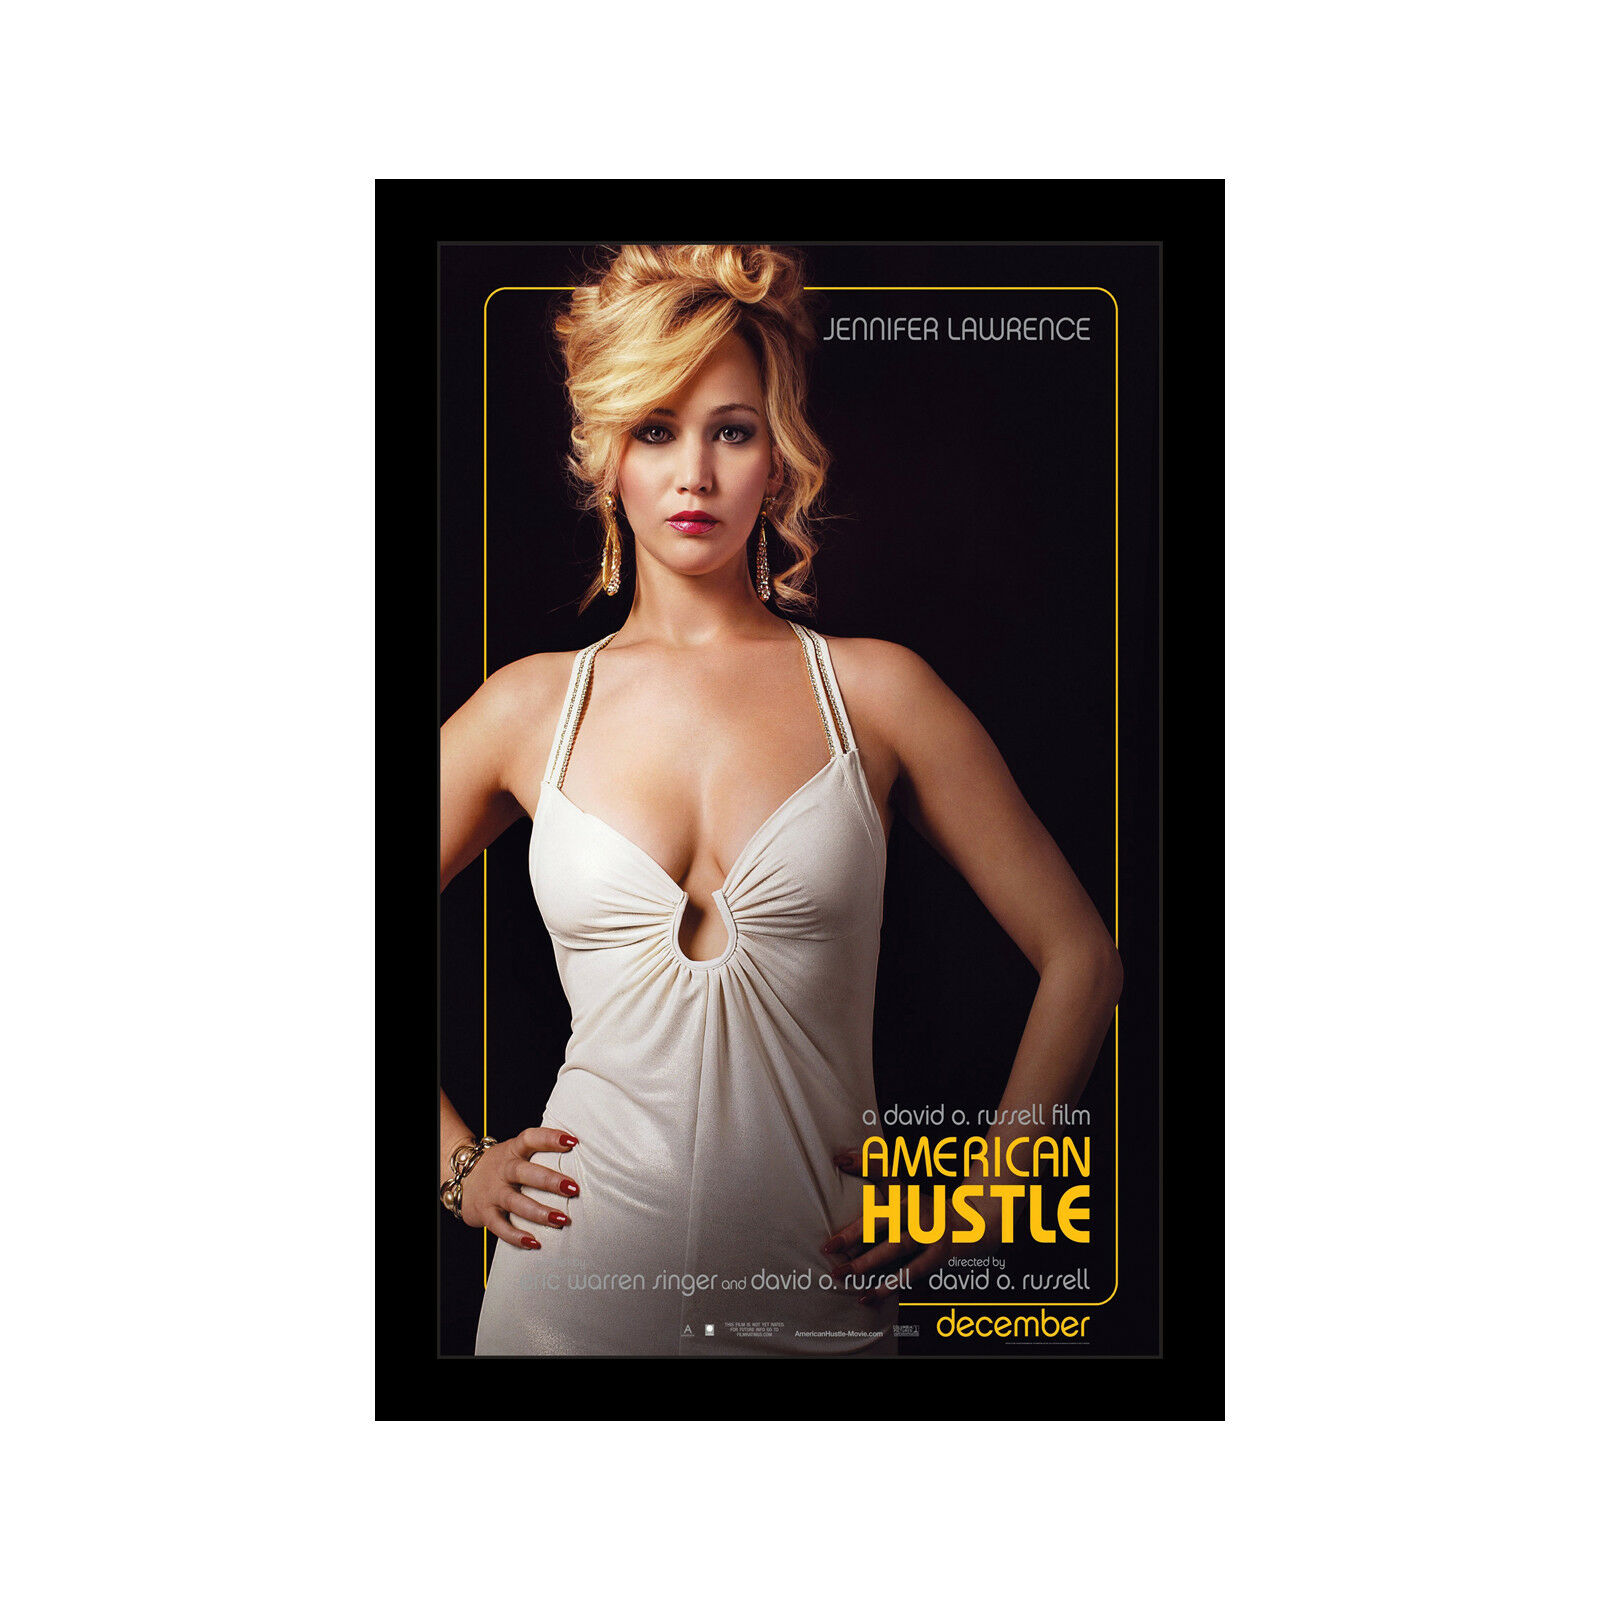 AMERICAN HUSTLE - 11x17 Framed Movie Poster by Wallspace